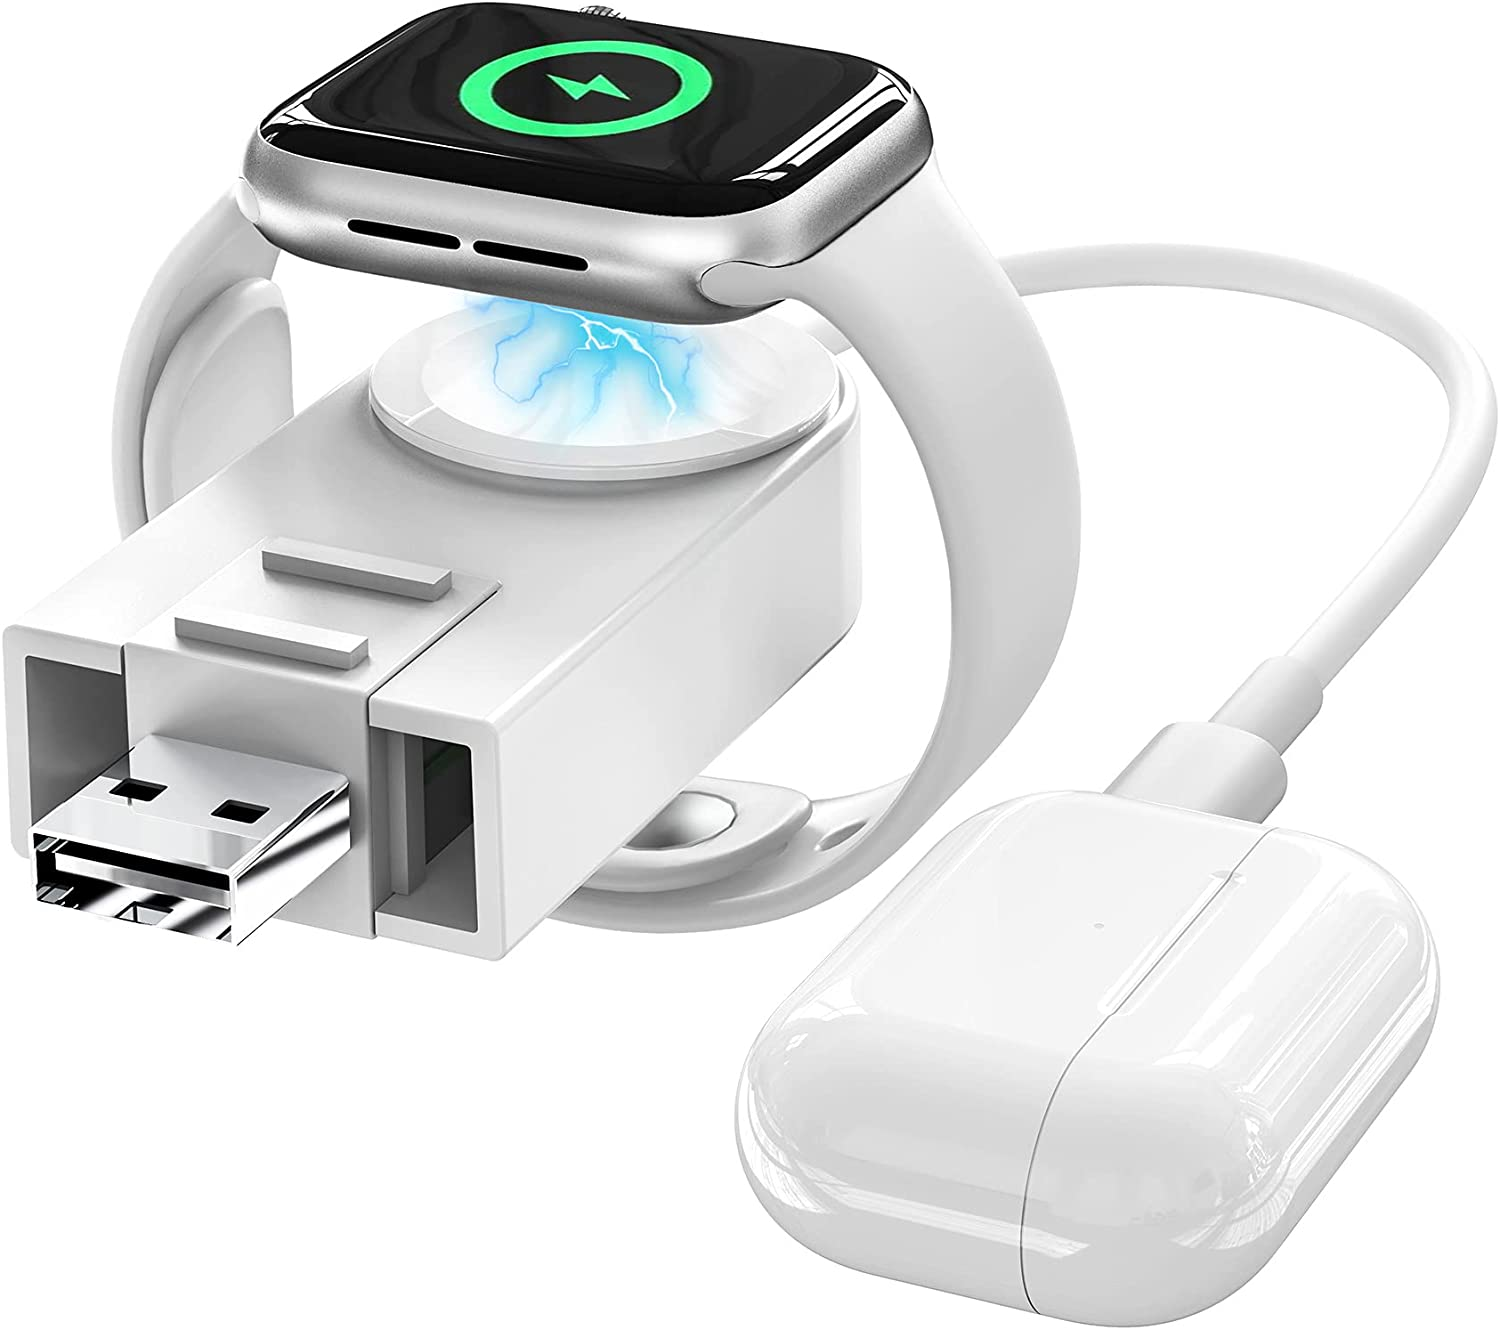 Upgrade Version for Apple Watch Charger 2-in-1 Wireless USB Charging Cable Cord Compatible with Apple Watch iWatch Charger Series 6/SE/5/4/3/2/1, for iPhone 12/11/Pro/X, AirPods and iPad Series